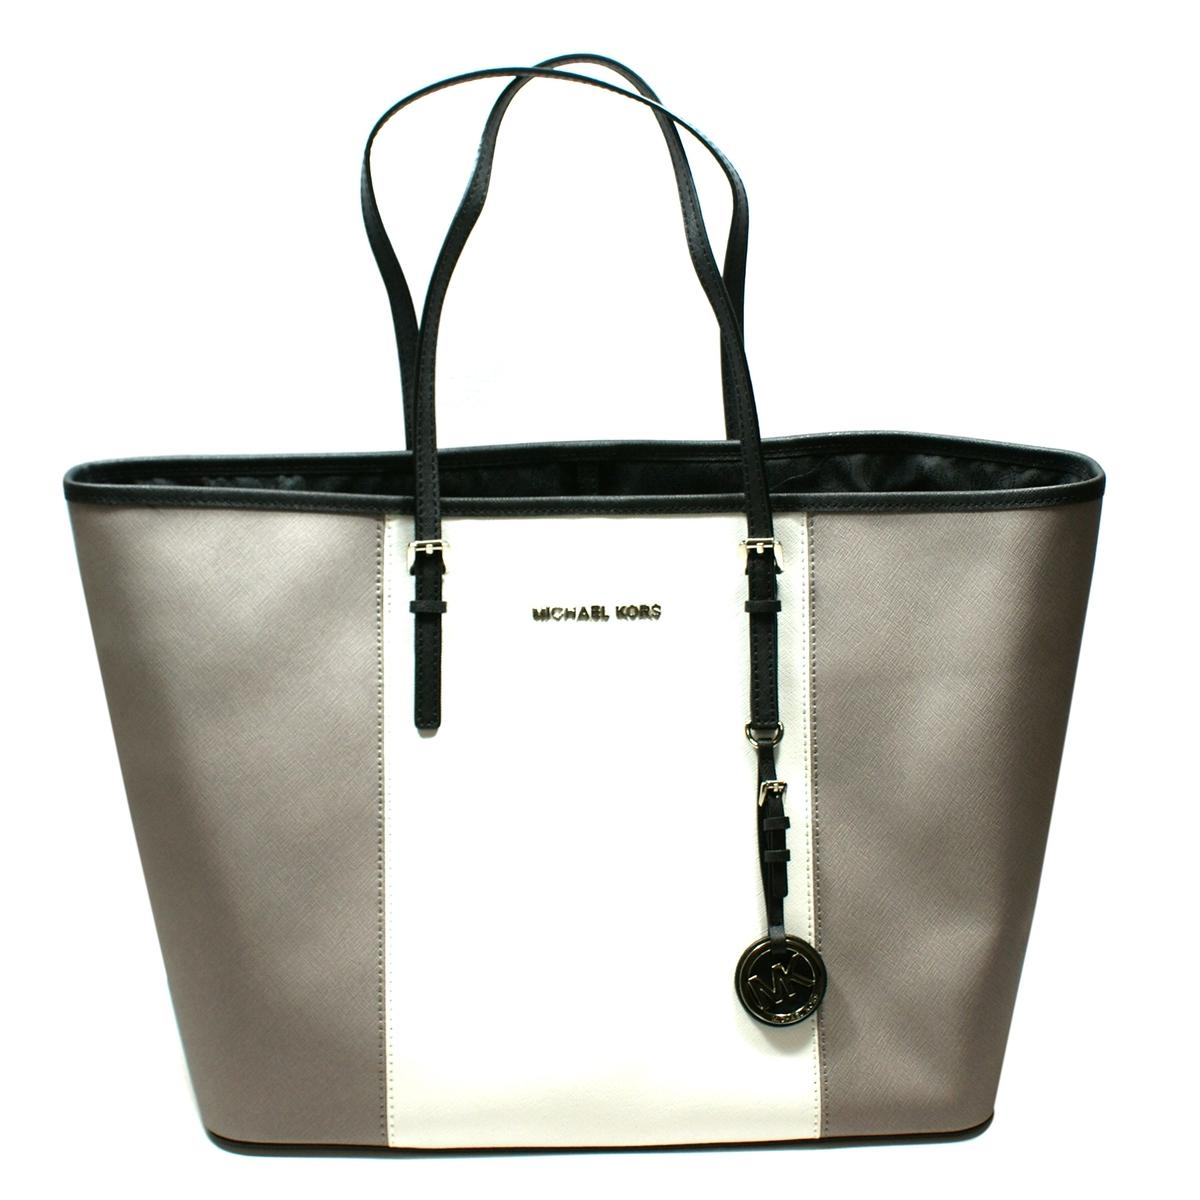 f8fd8fd171bce4 Home · Michael Kors · Jet Set Medium Travel Center Stripe Genuine Leather  Tote Grey/ White. CLICK THUMBNAIL TO ZOOM. Found ...